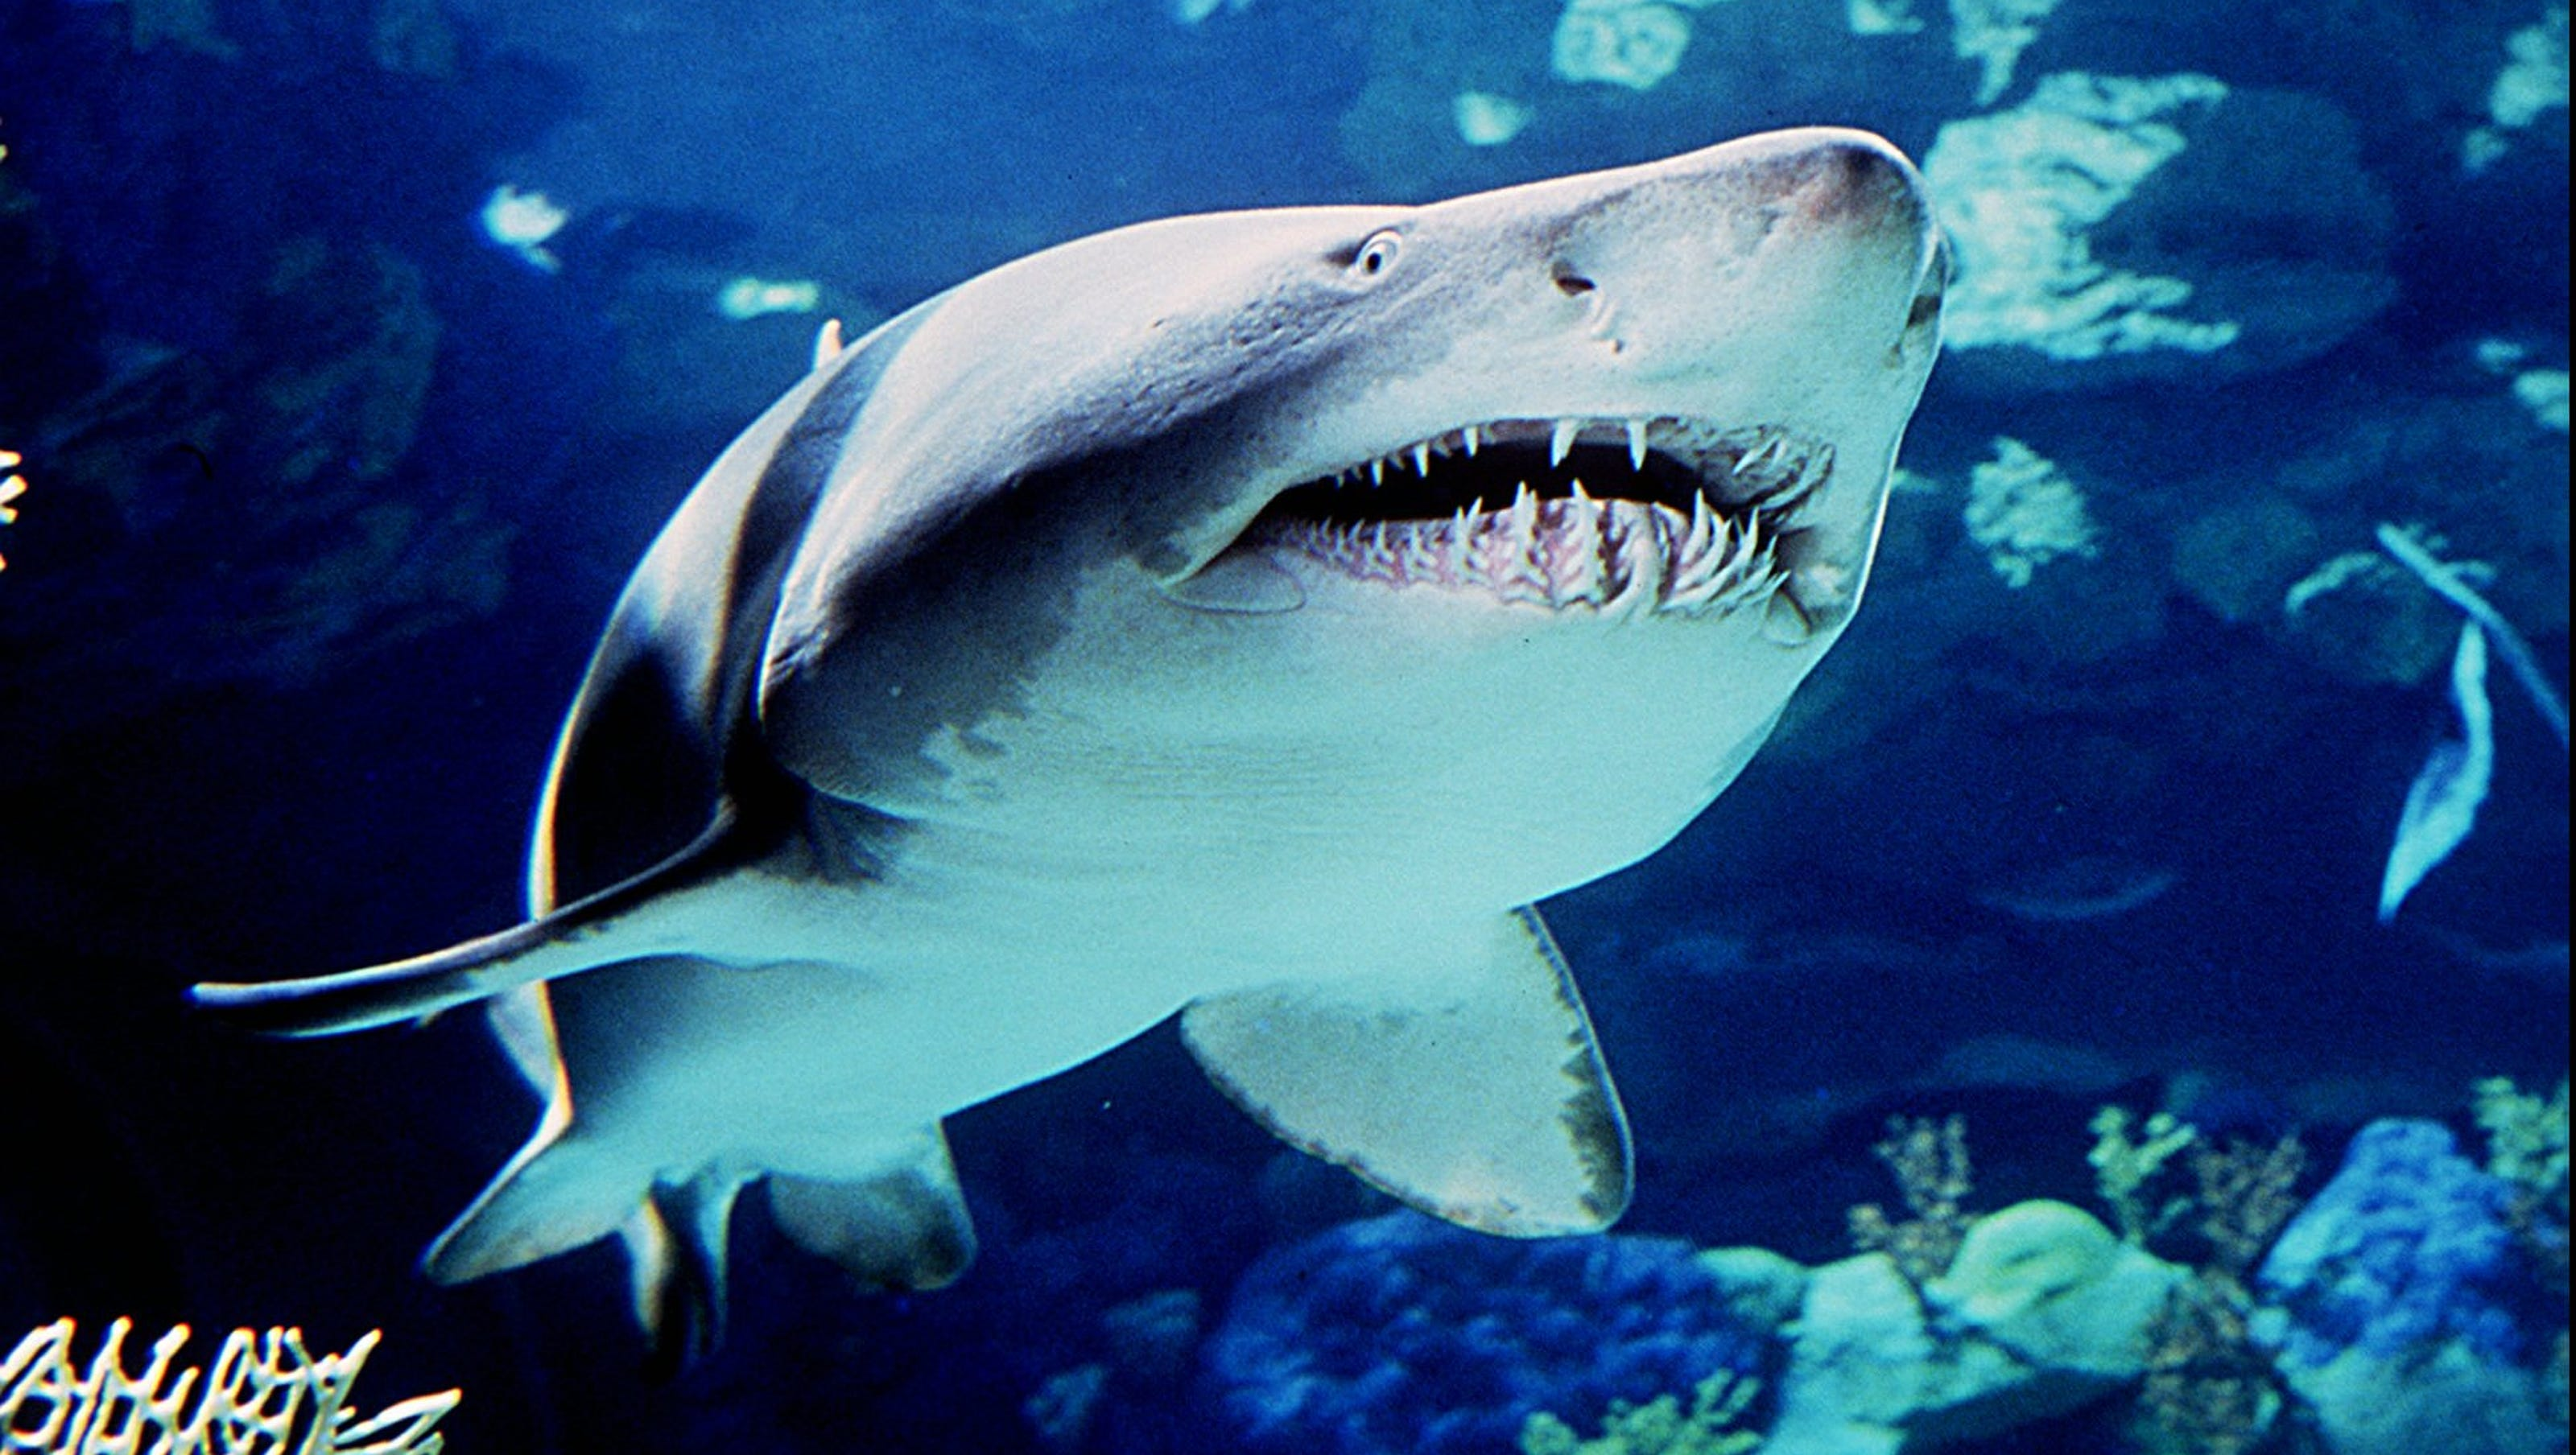 Sharks Vs Humans No Fair Fight At 100 Million Deaths To